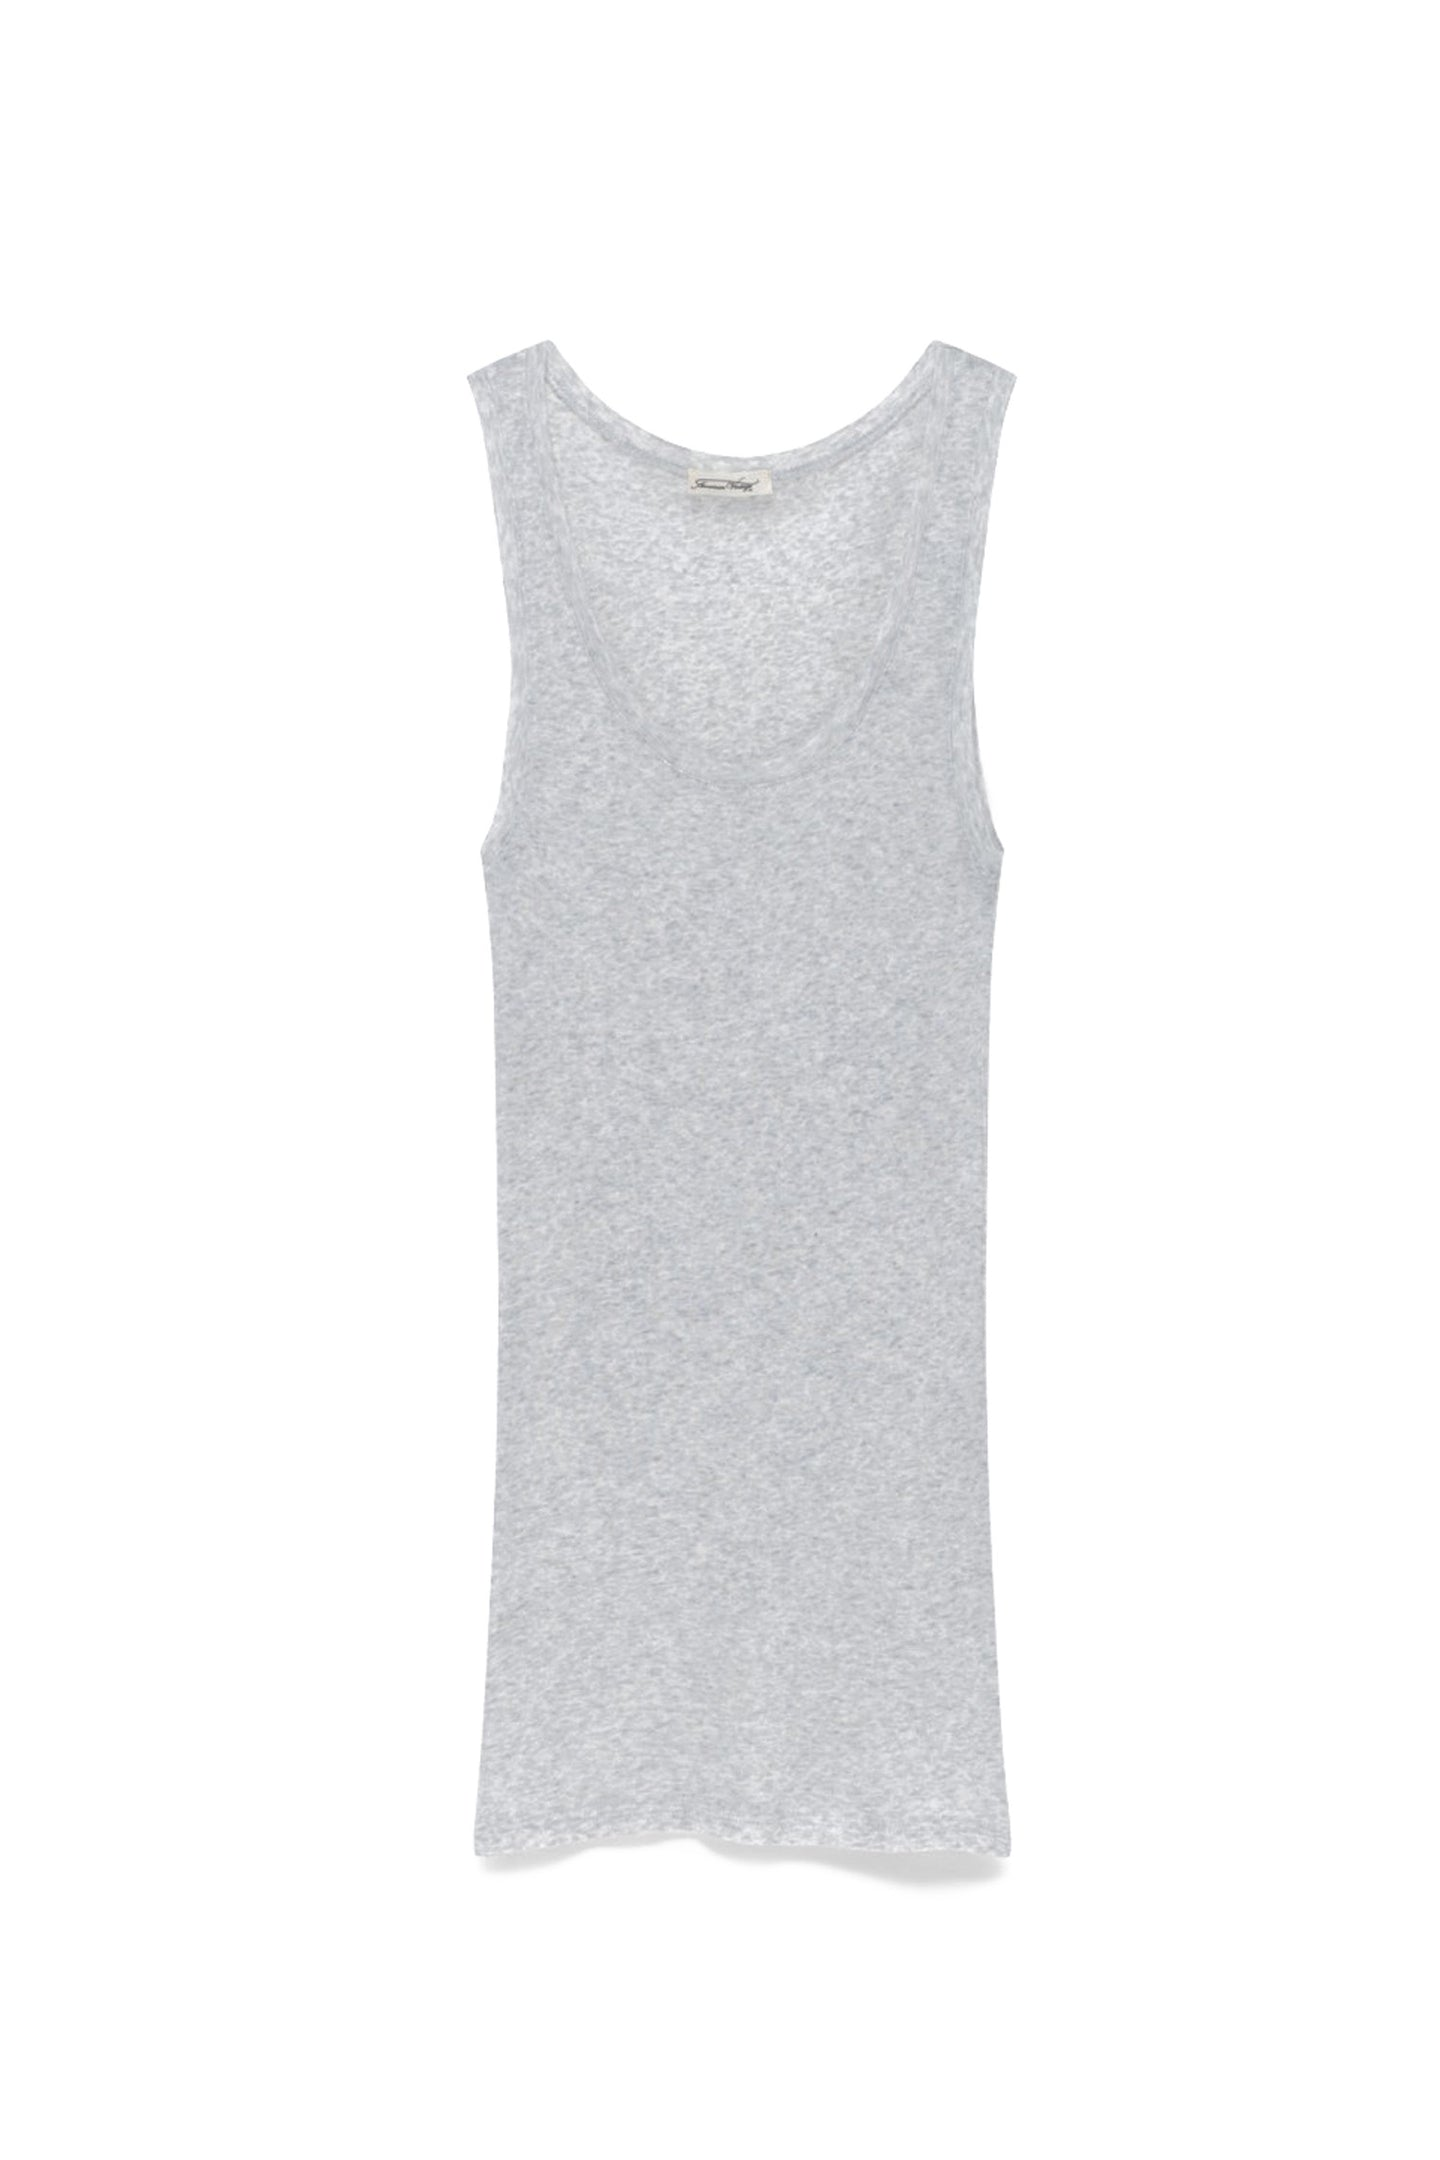 'Massachusetts' Supima Cotton Tank Top Heather-Gre